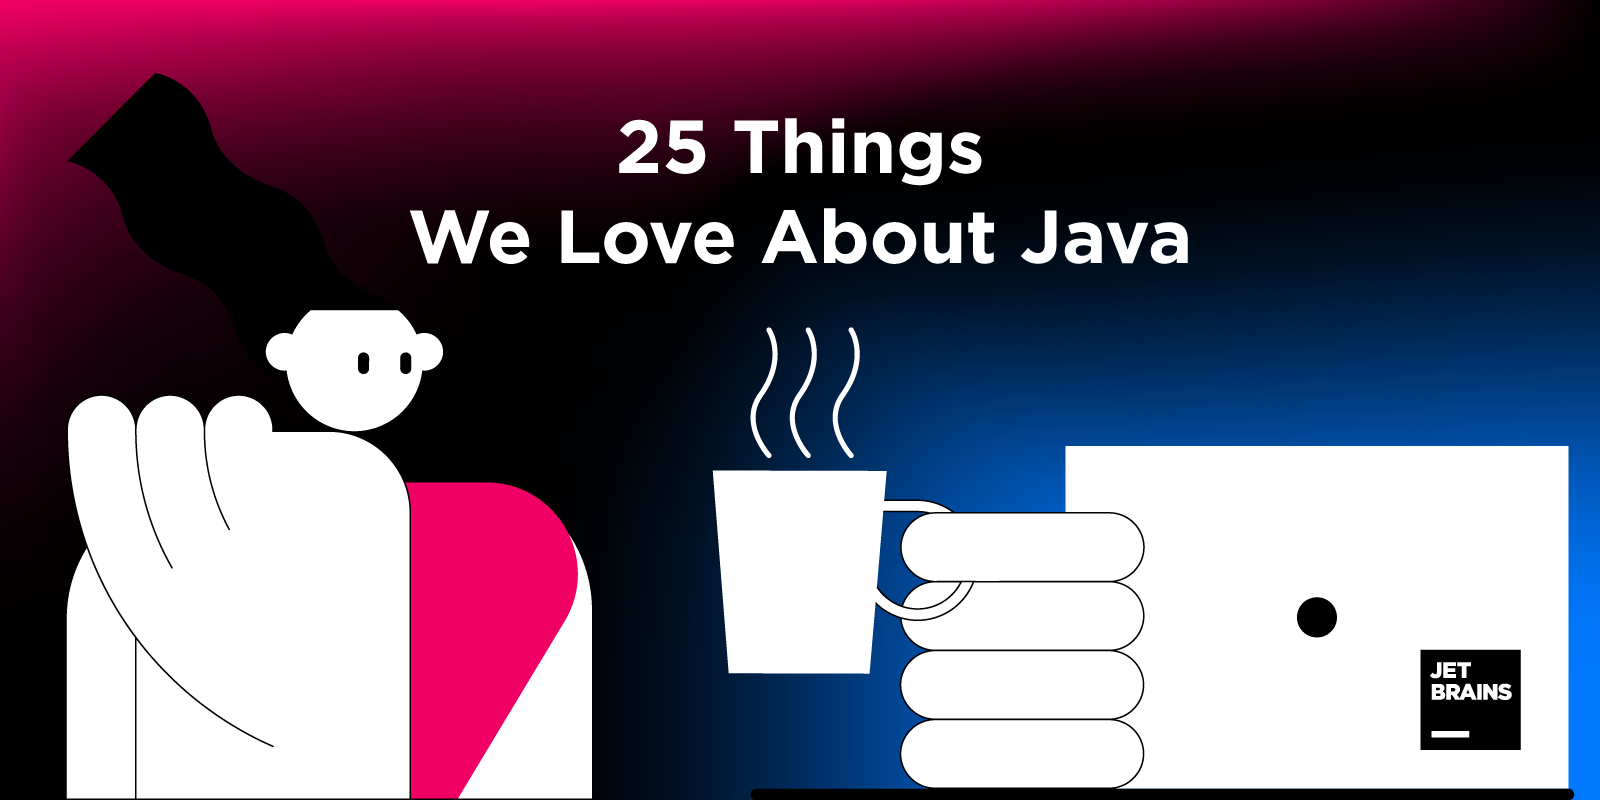 25 Things We Love About Java